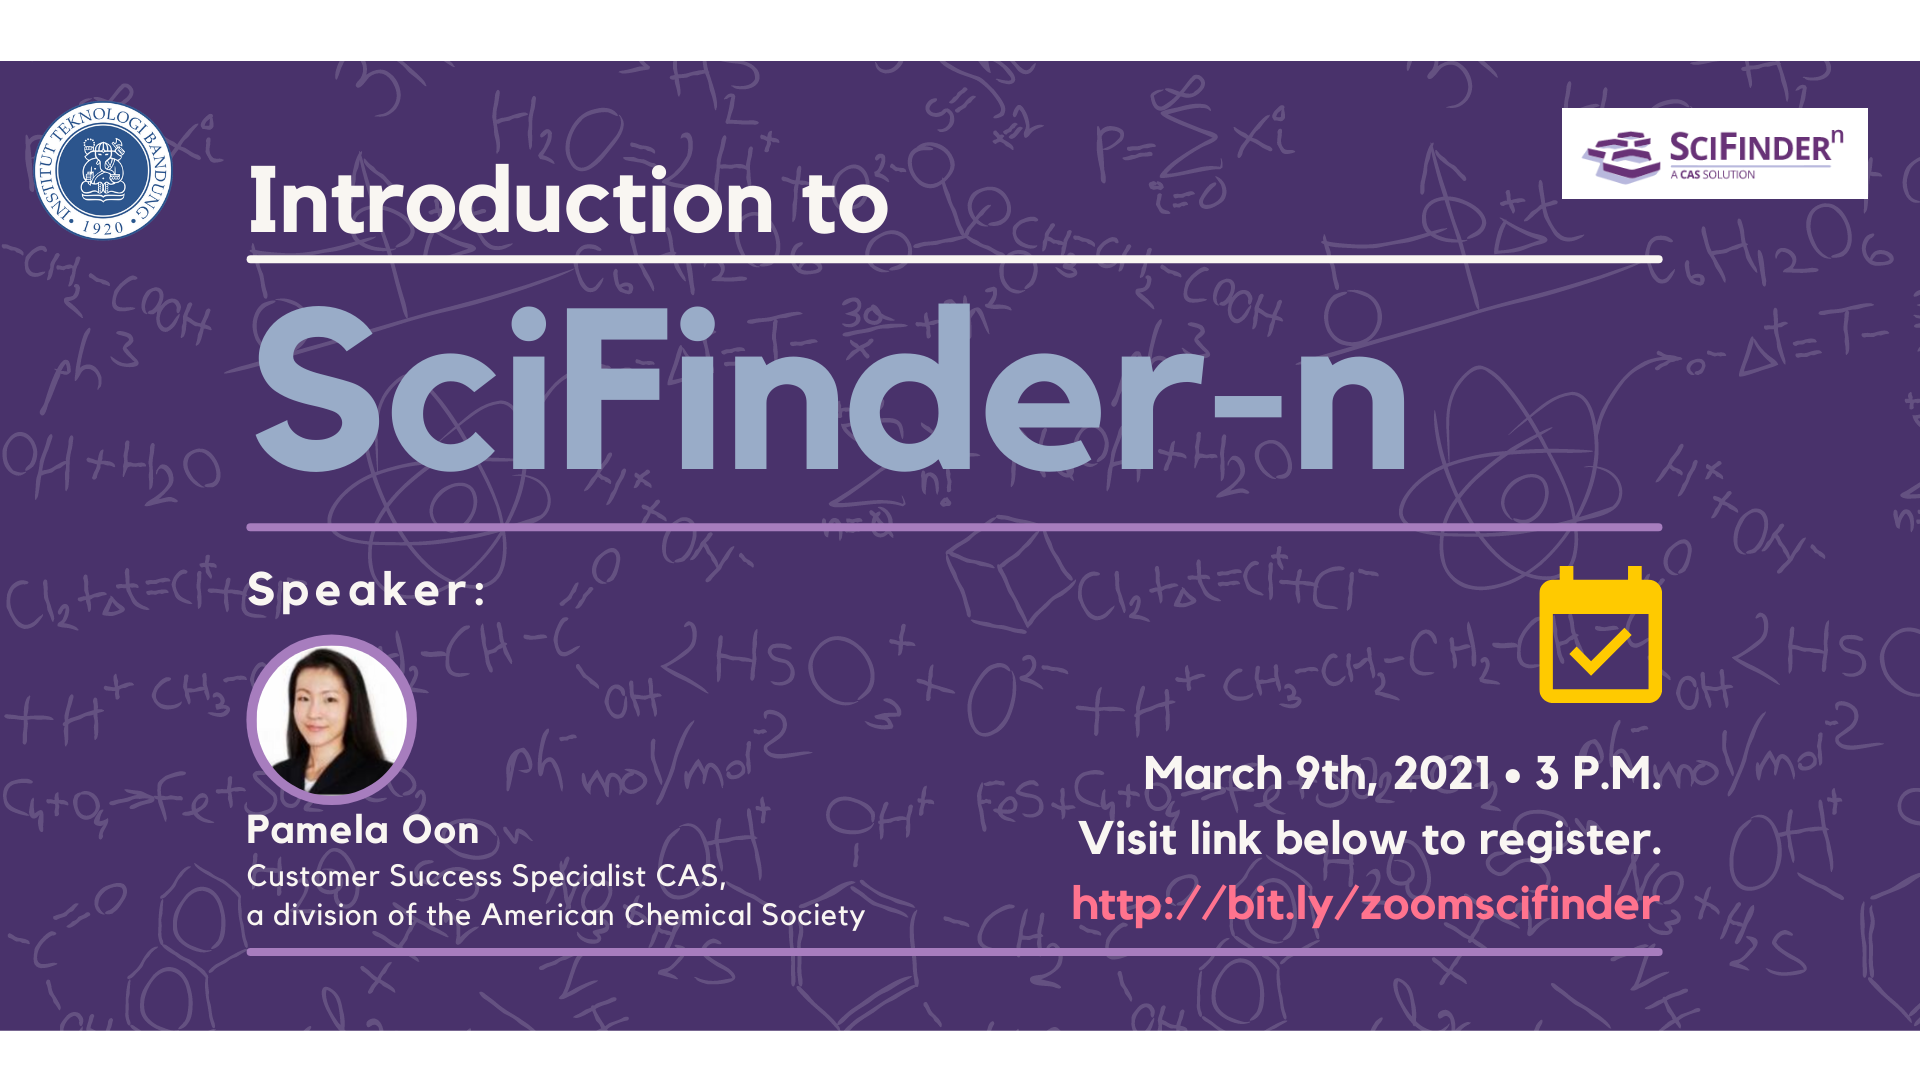 Introduction to SciFinder-n